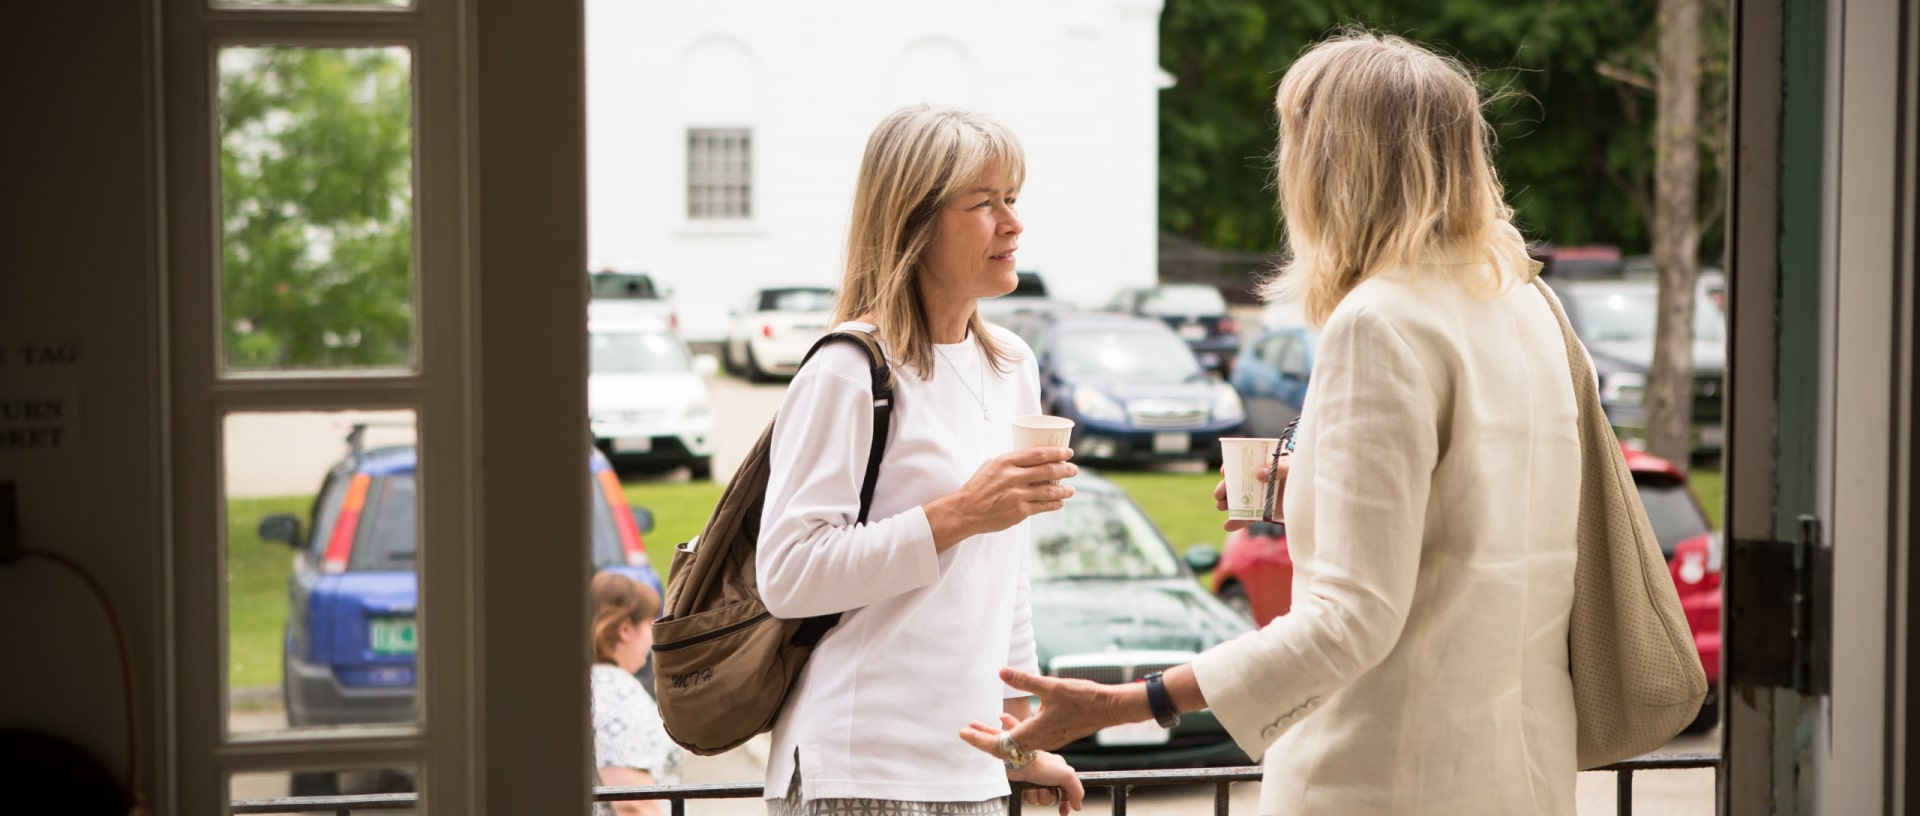 Two women drink coffee and talk at the entrance to the Stockbridge Congregational Church